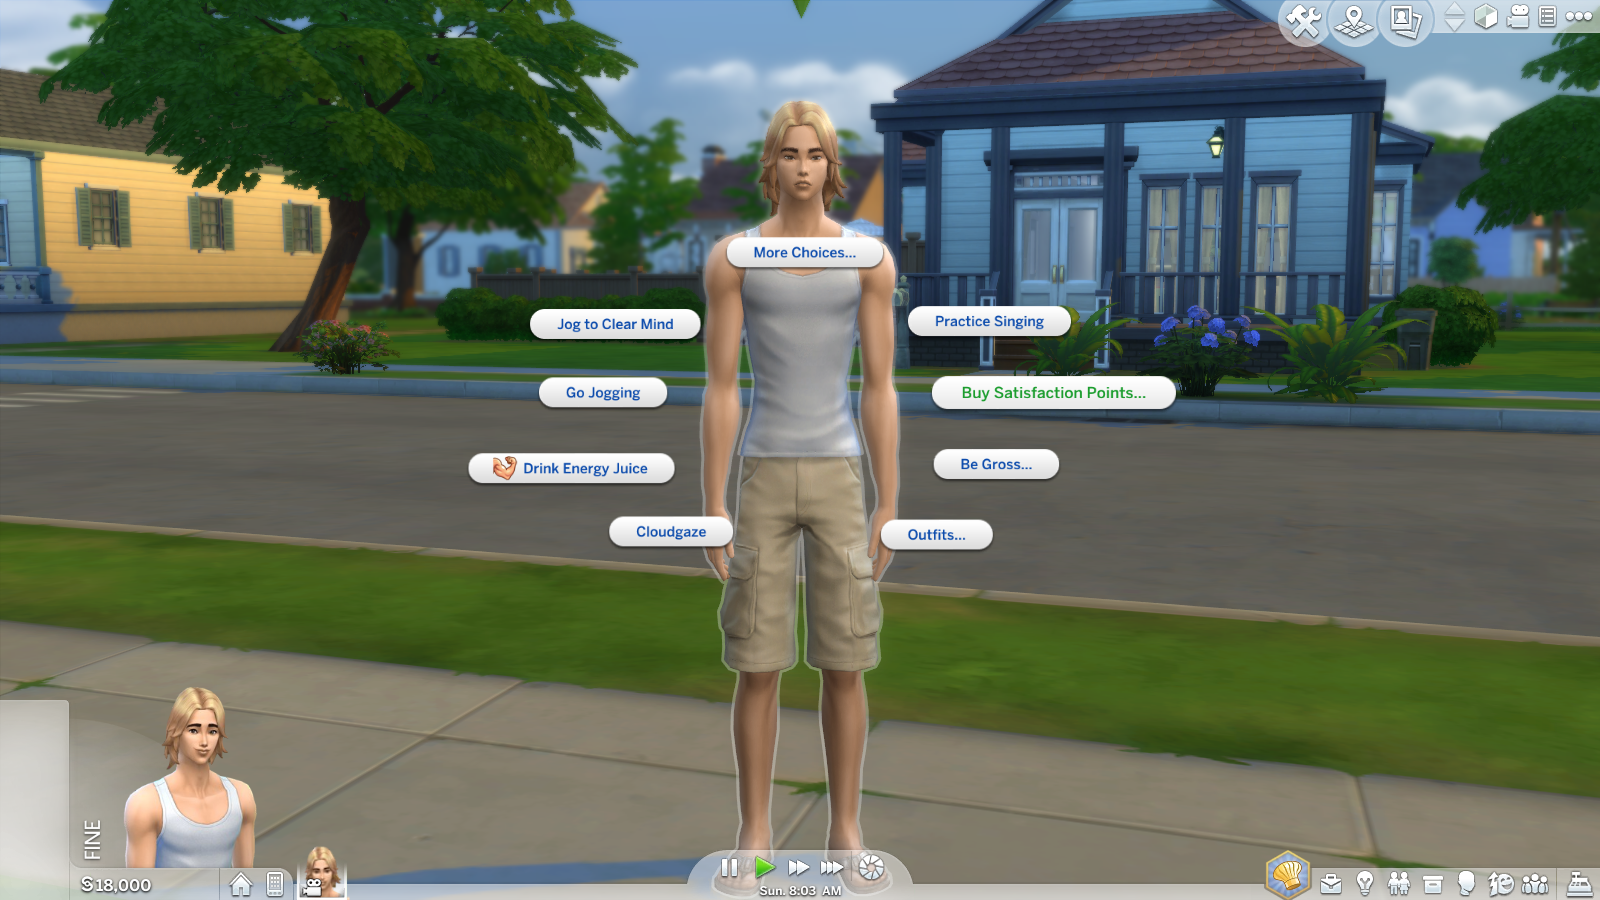 sims 4 give aspiration points